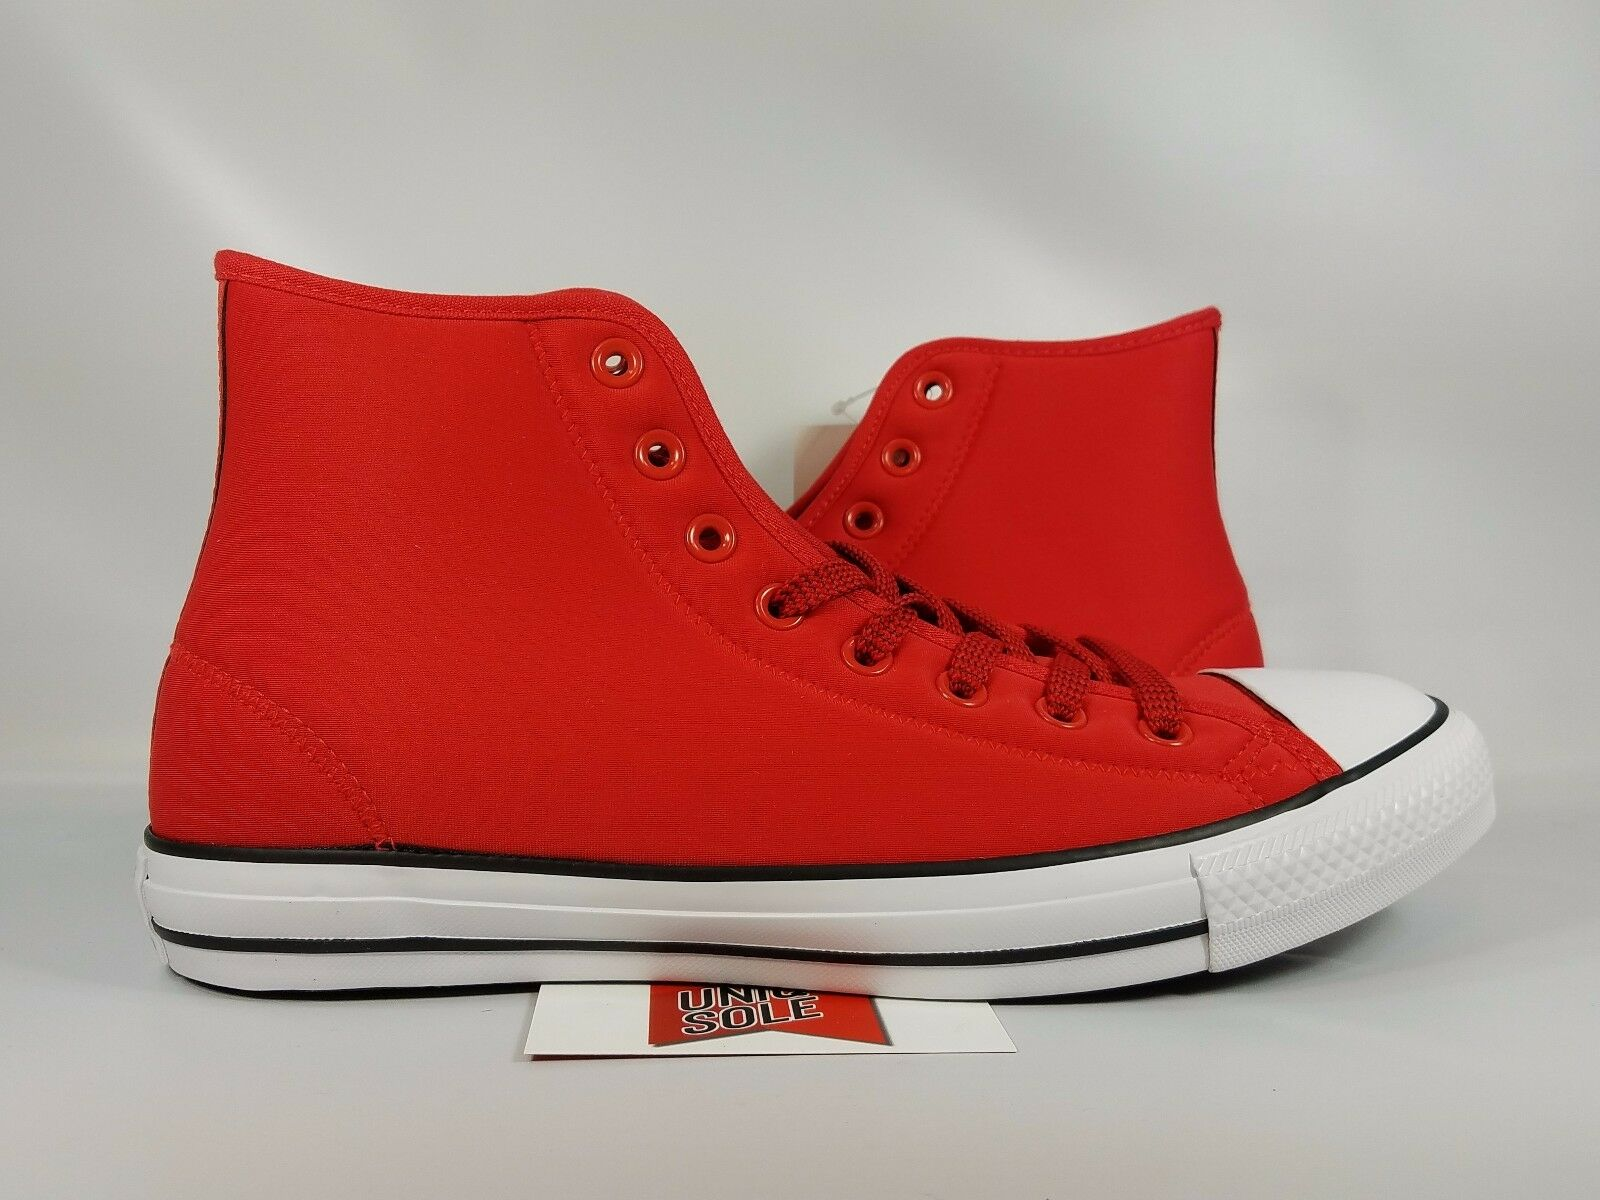 5e0120eef789 Converse Chuck Taylor All Star High Top CASINO RED RED RED WHITE NYLON  153971C sz 10.5 51fde7